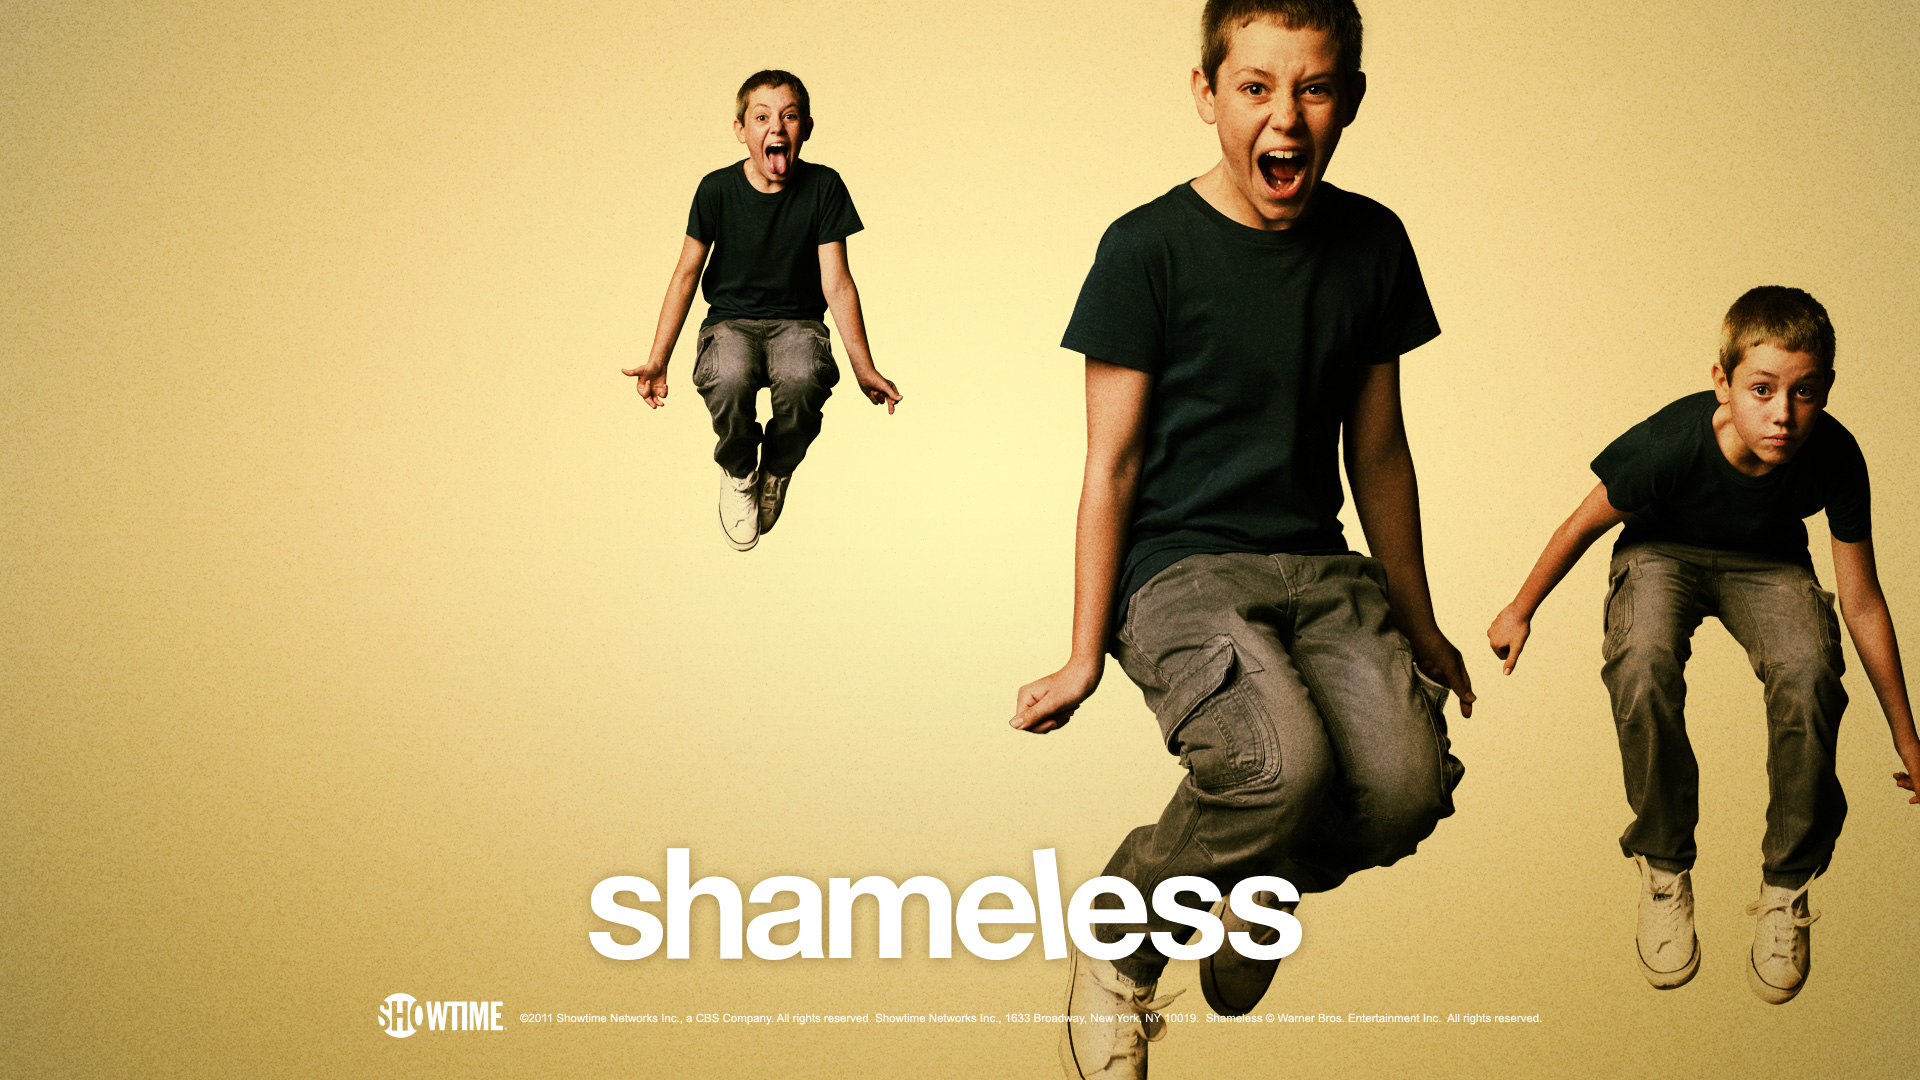 Shameless wallpaper 4 | WallpapersBQ